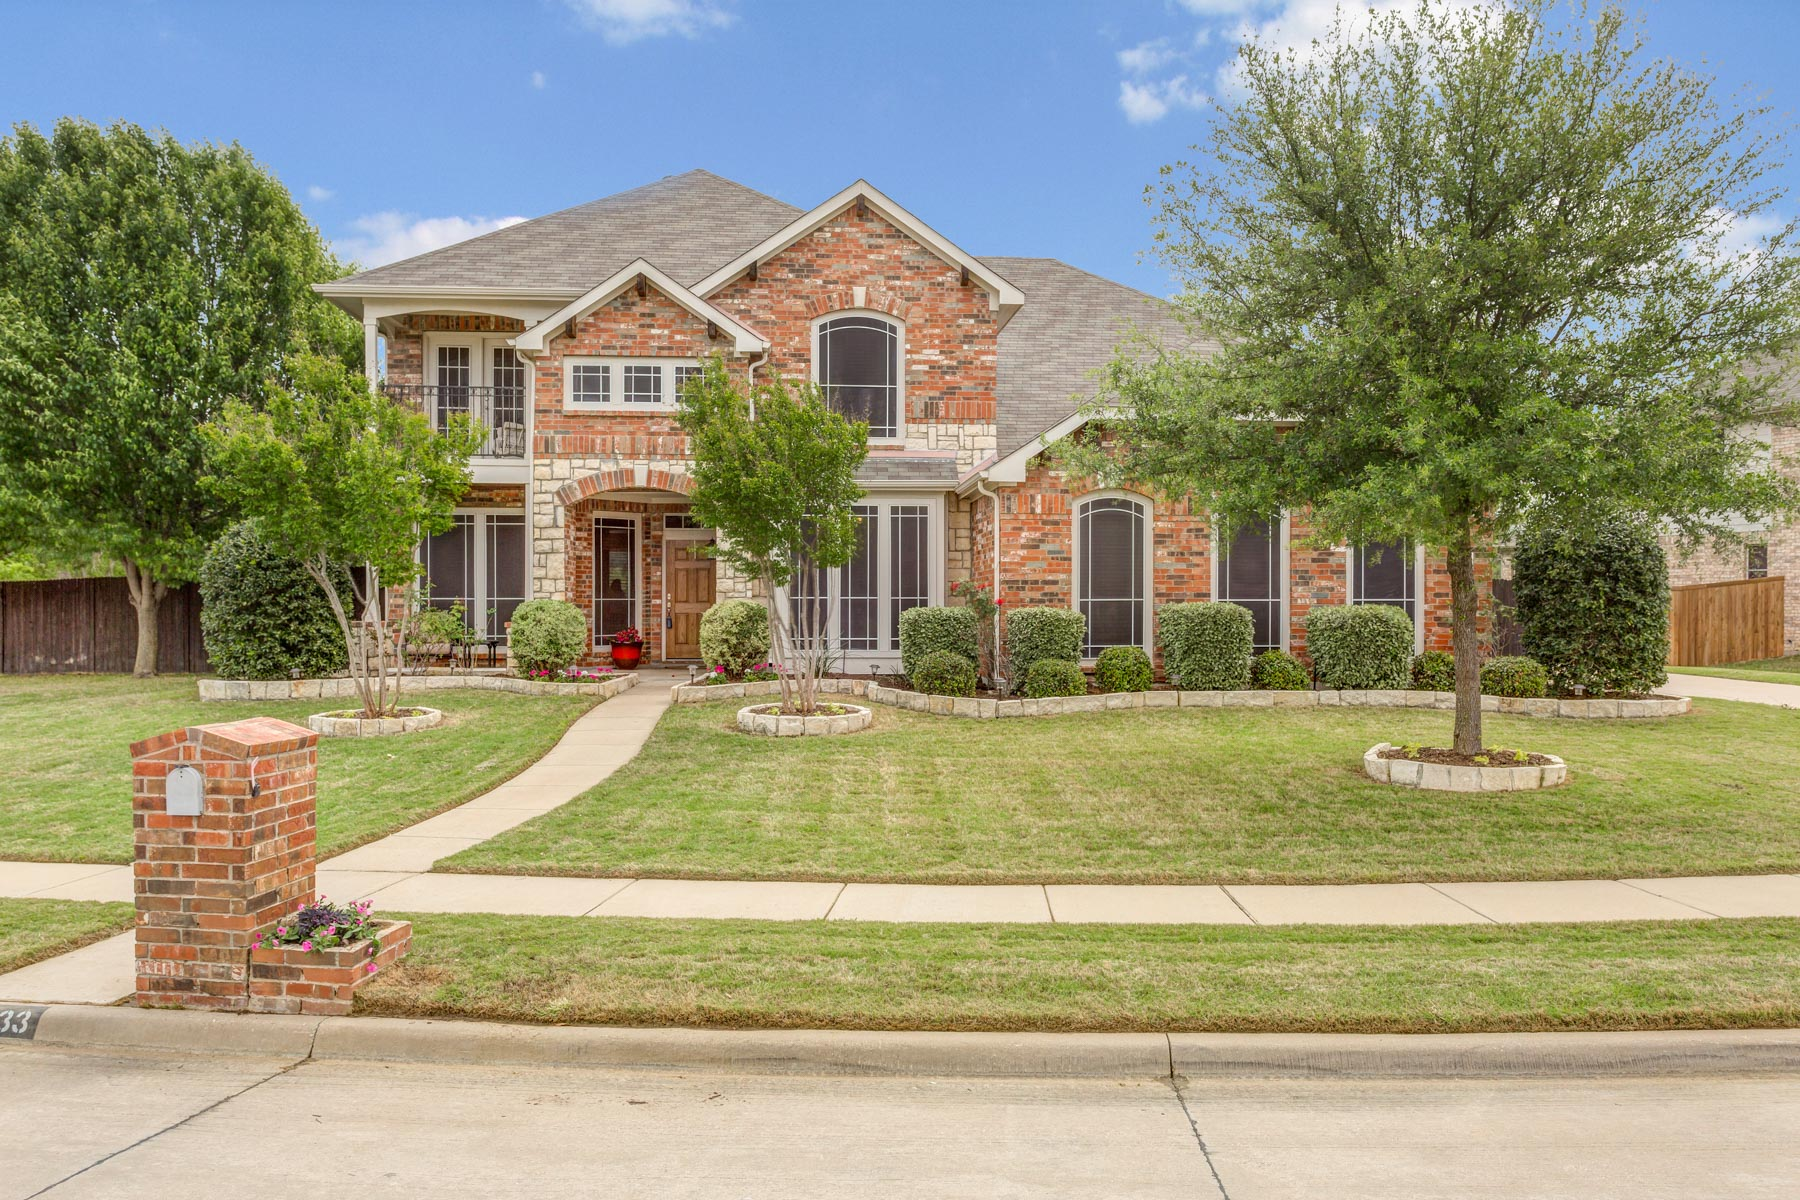 Single Family Home for Sale at Mansfield Traditional 3233 Ridge Trace Cir Mansfield, Texas 76063 United States